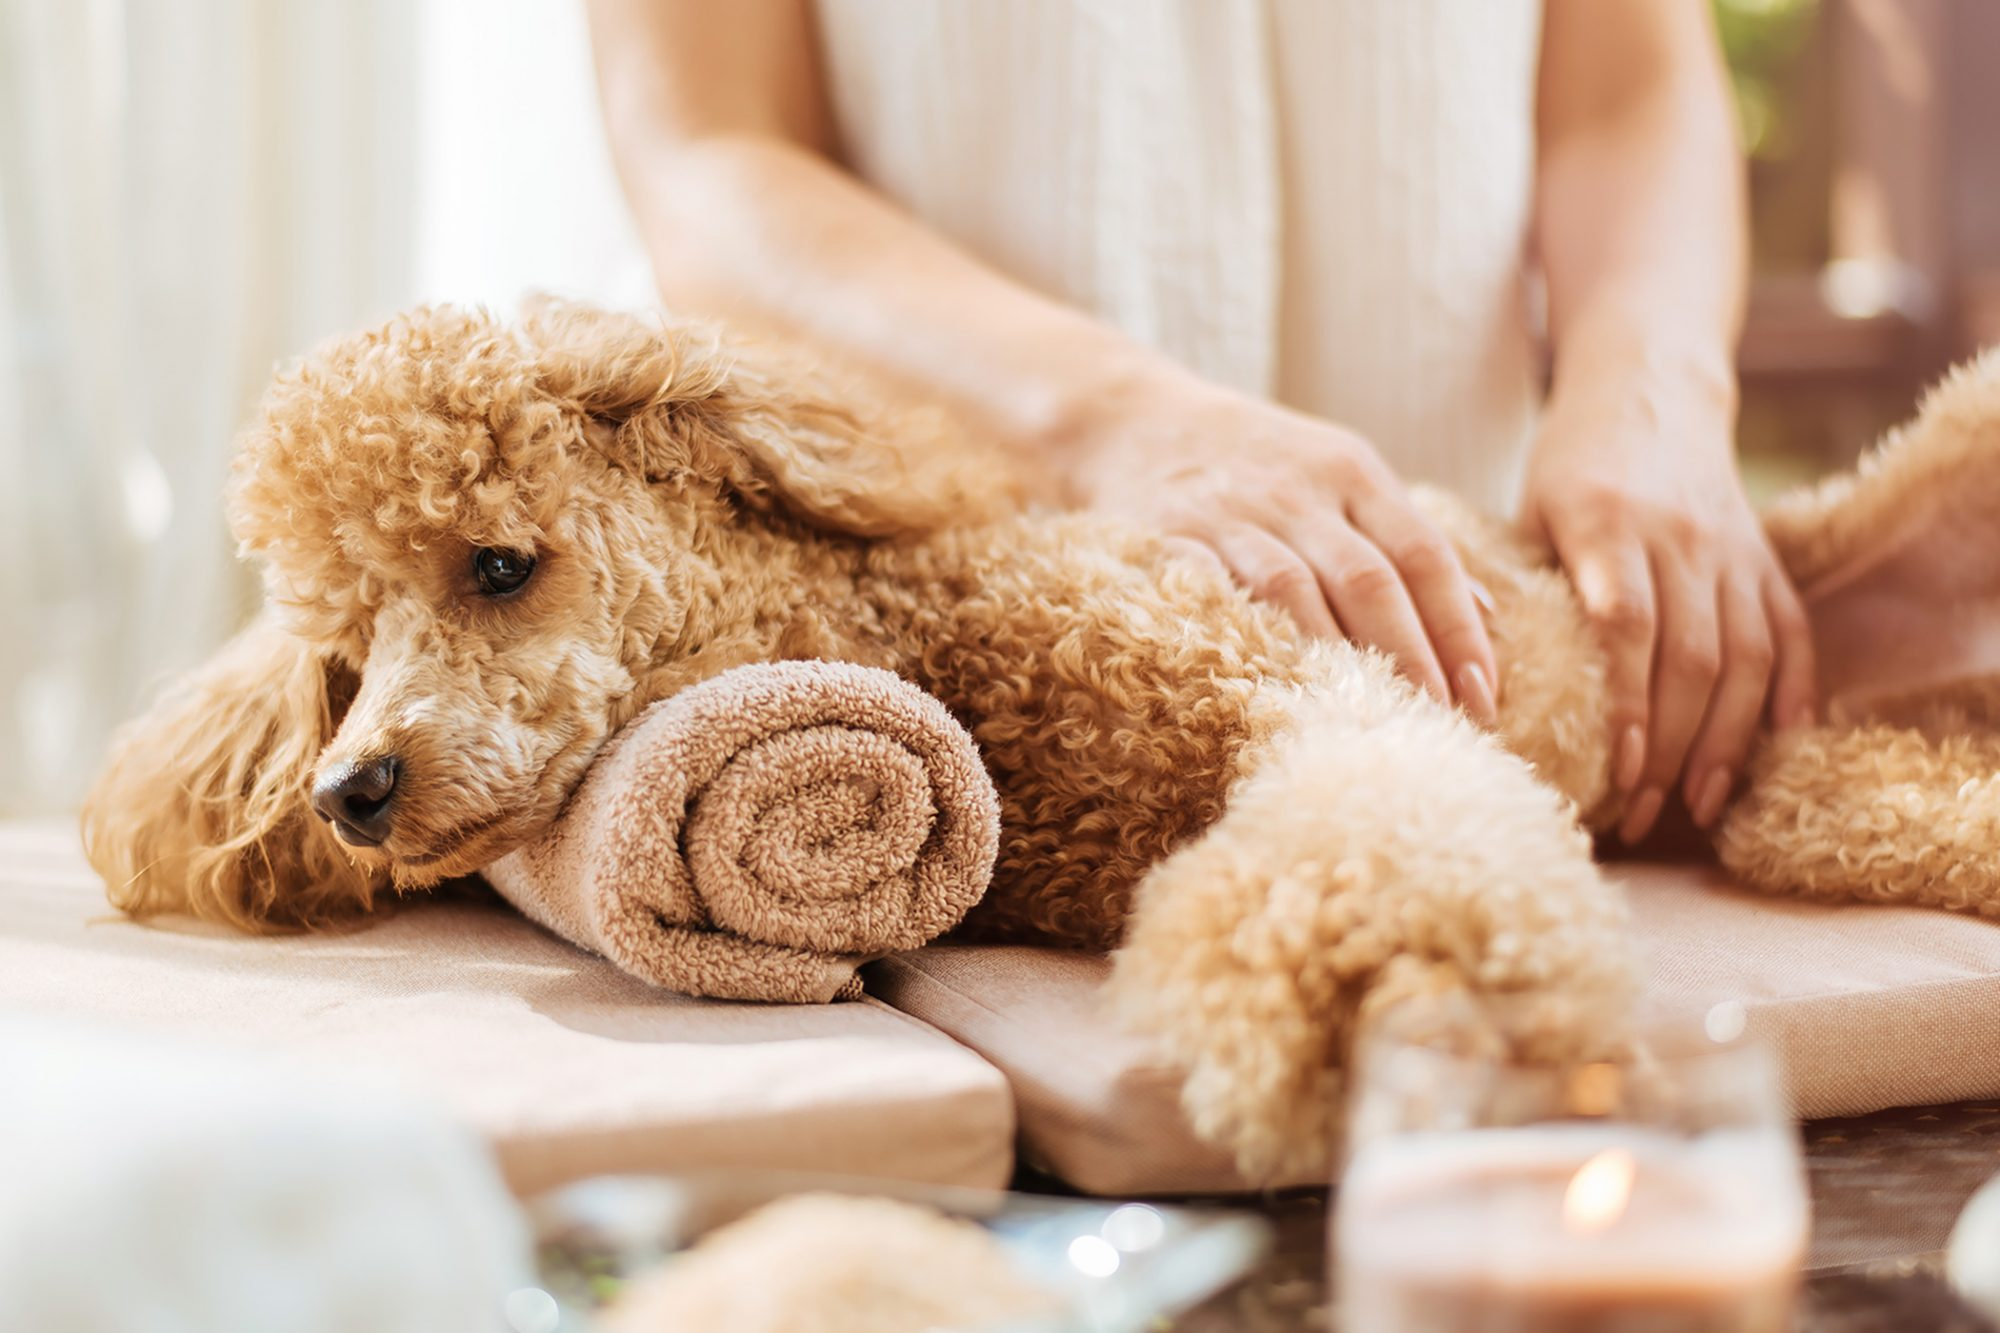 woman giving body massage to a dog